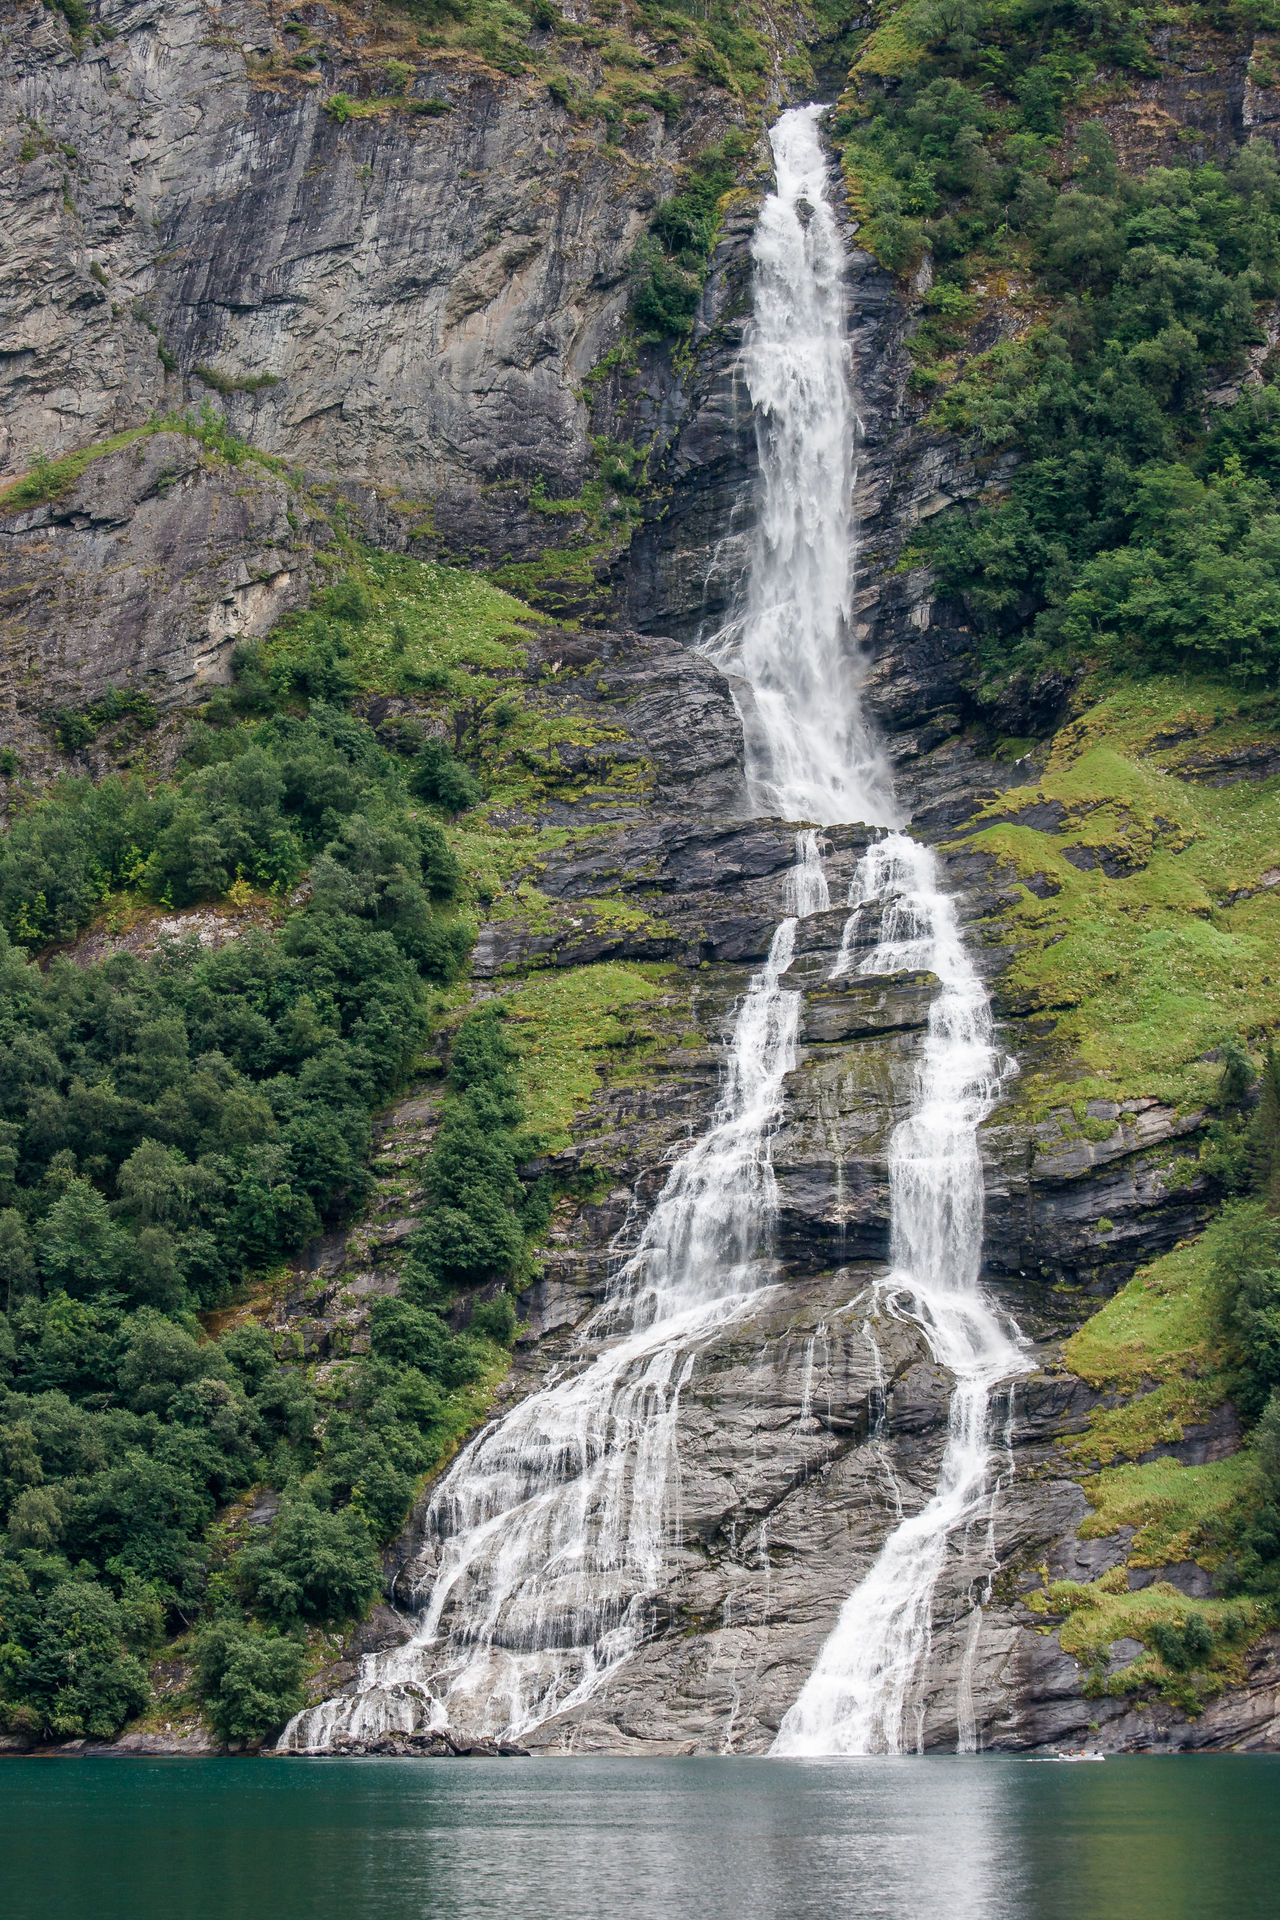 Friaren Geirangerfjord Norway Seven Sisters Wonderful Beauty In Nature Boat Bottle Day Fjord Geiranger Nature No People Outdoors River Rock - Object Scenics Splashing Tourism Travel Destinations Tree Water Waterfall